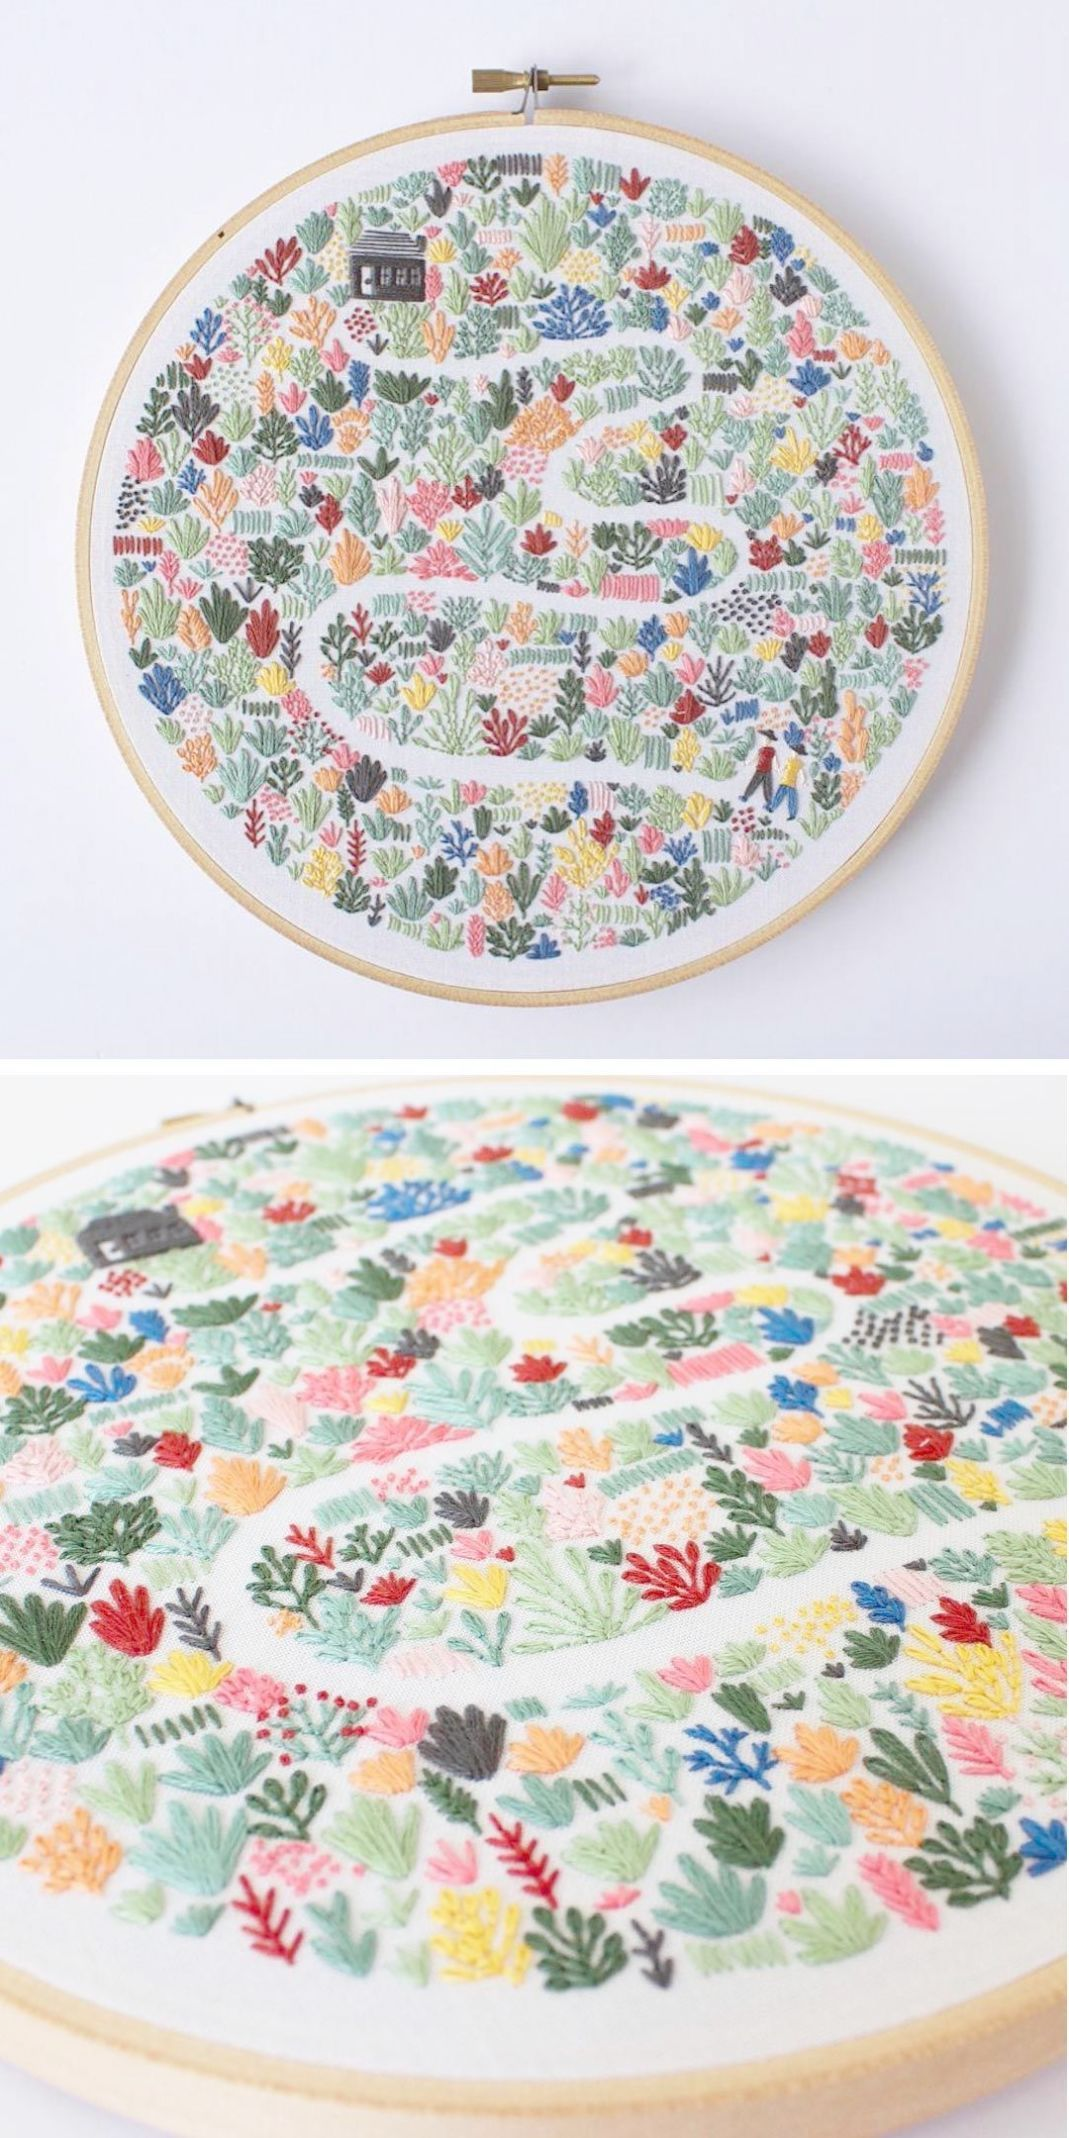 Embroidery designs emb file free download embroidery patterns